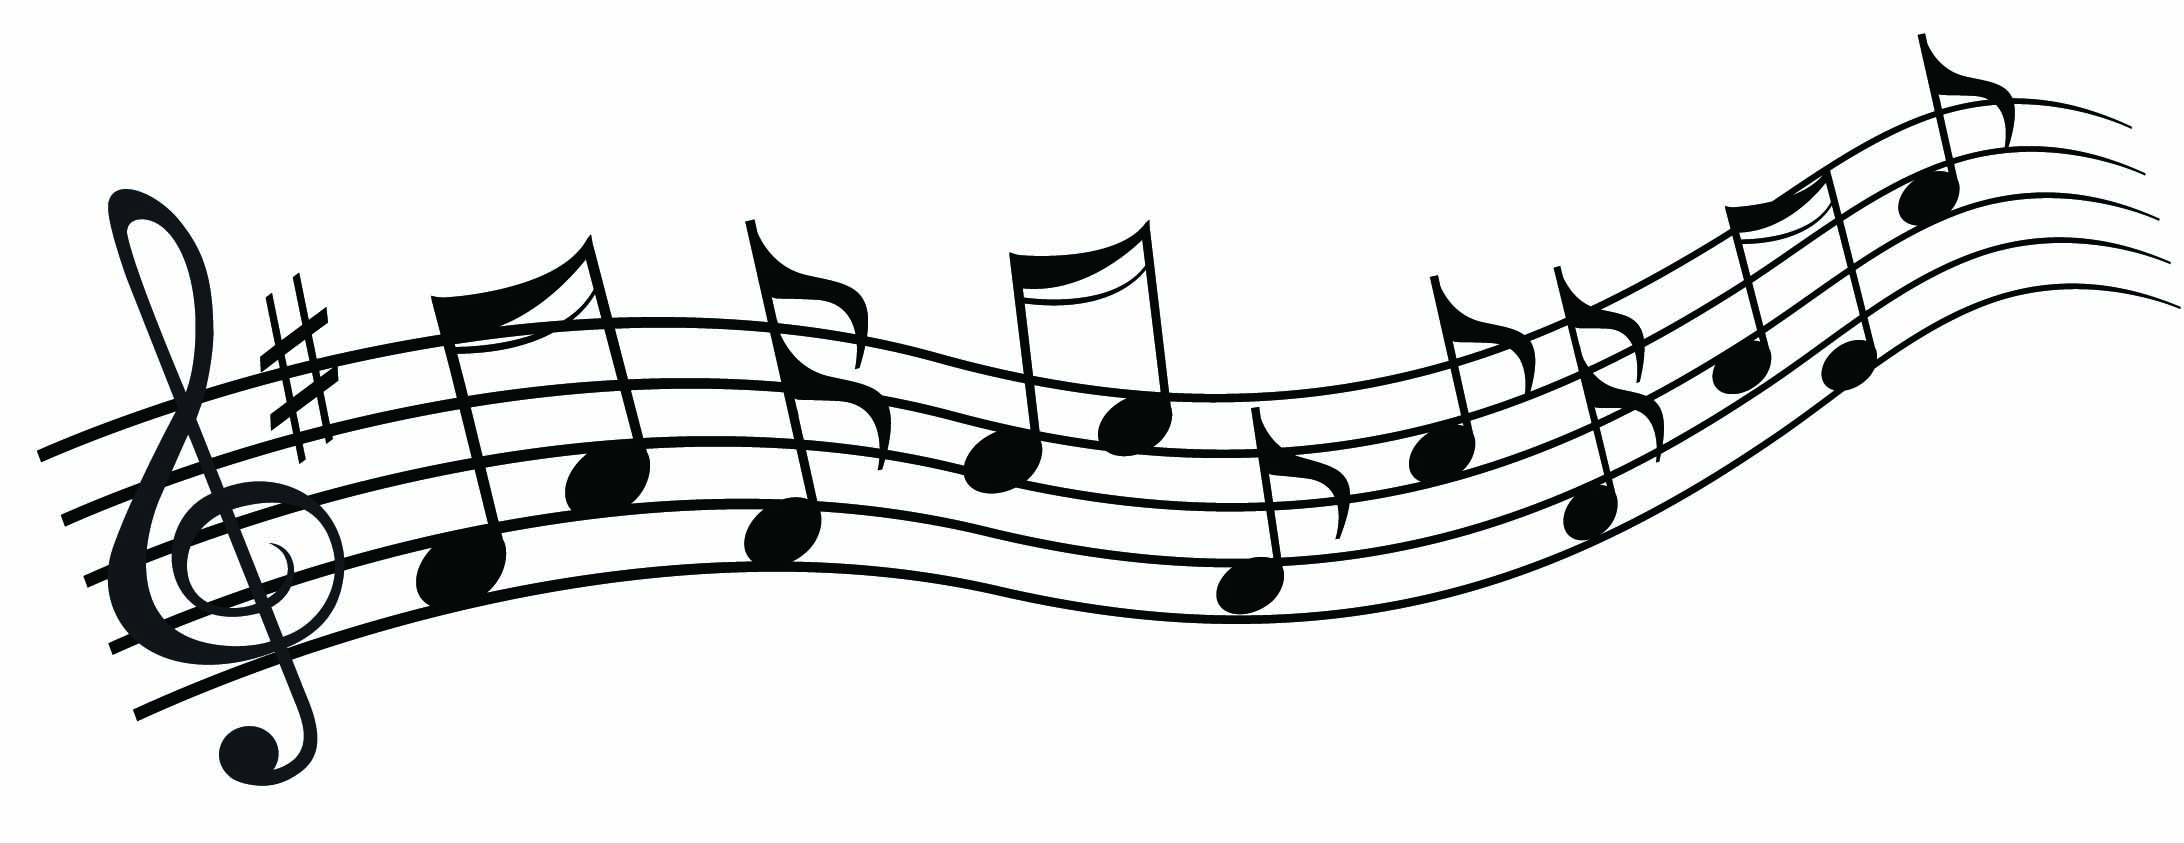 Clipart Music & Music Clip Art Images.